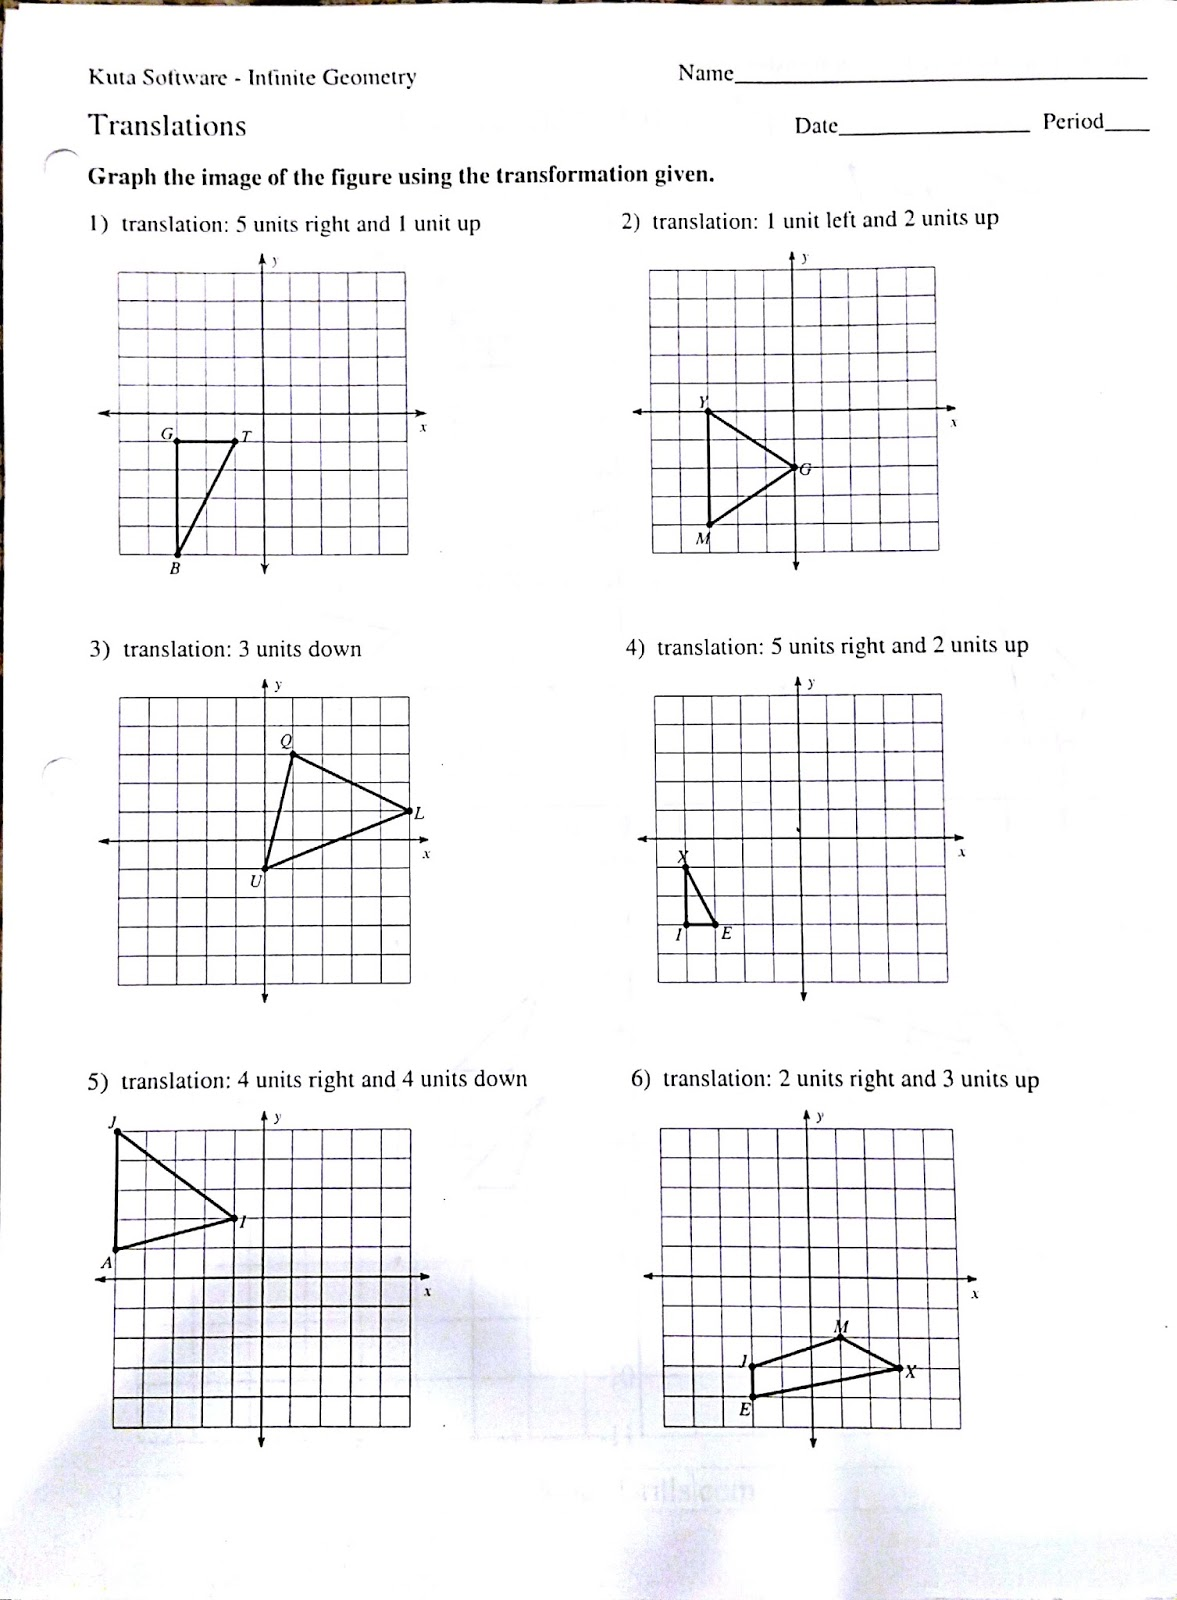 worksheet Geometric Reflections Worksheet kuta software infinite geometry rotations answer key 28 images reflections worksheet1student maths translations worksheet printable alge